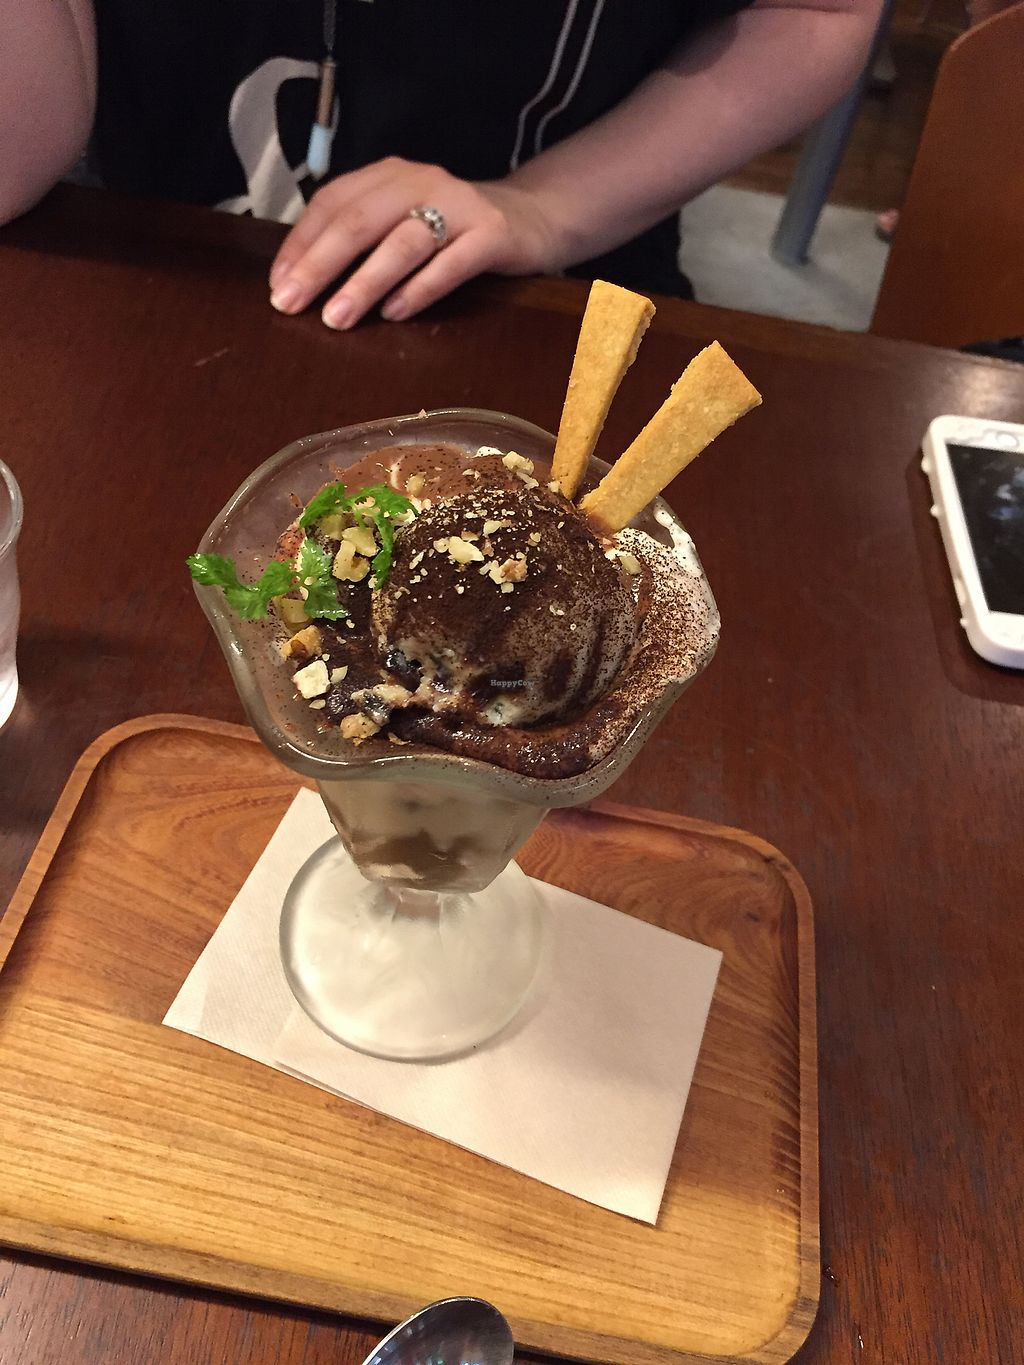 """Photo of Future Food Cafe Restaurant Tubu Tubu  by <a href=""""/members/profile/schonstal"""">schonstal</a> <br/>Mocha Parfait <br/> September 14, 2017  - <a href='/contact/abuse/image/10810/304171'>Report</a>"""